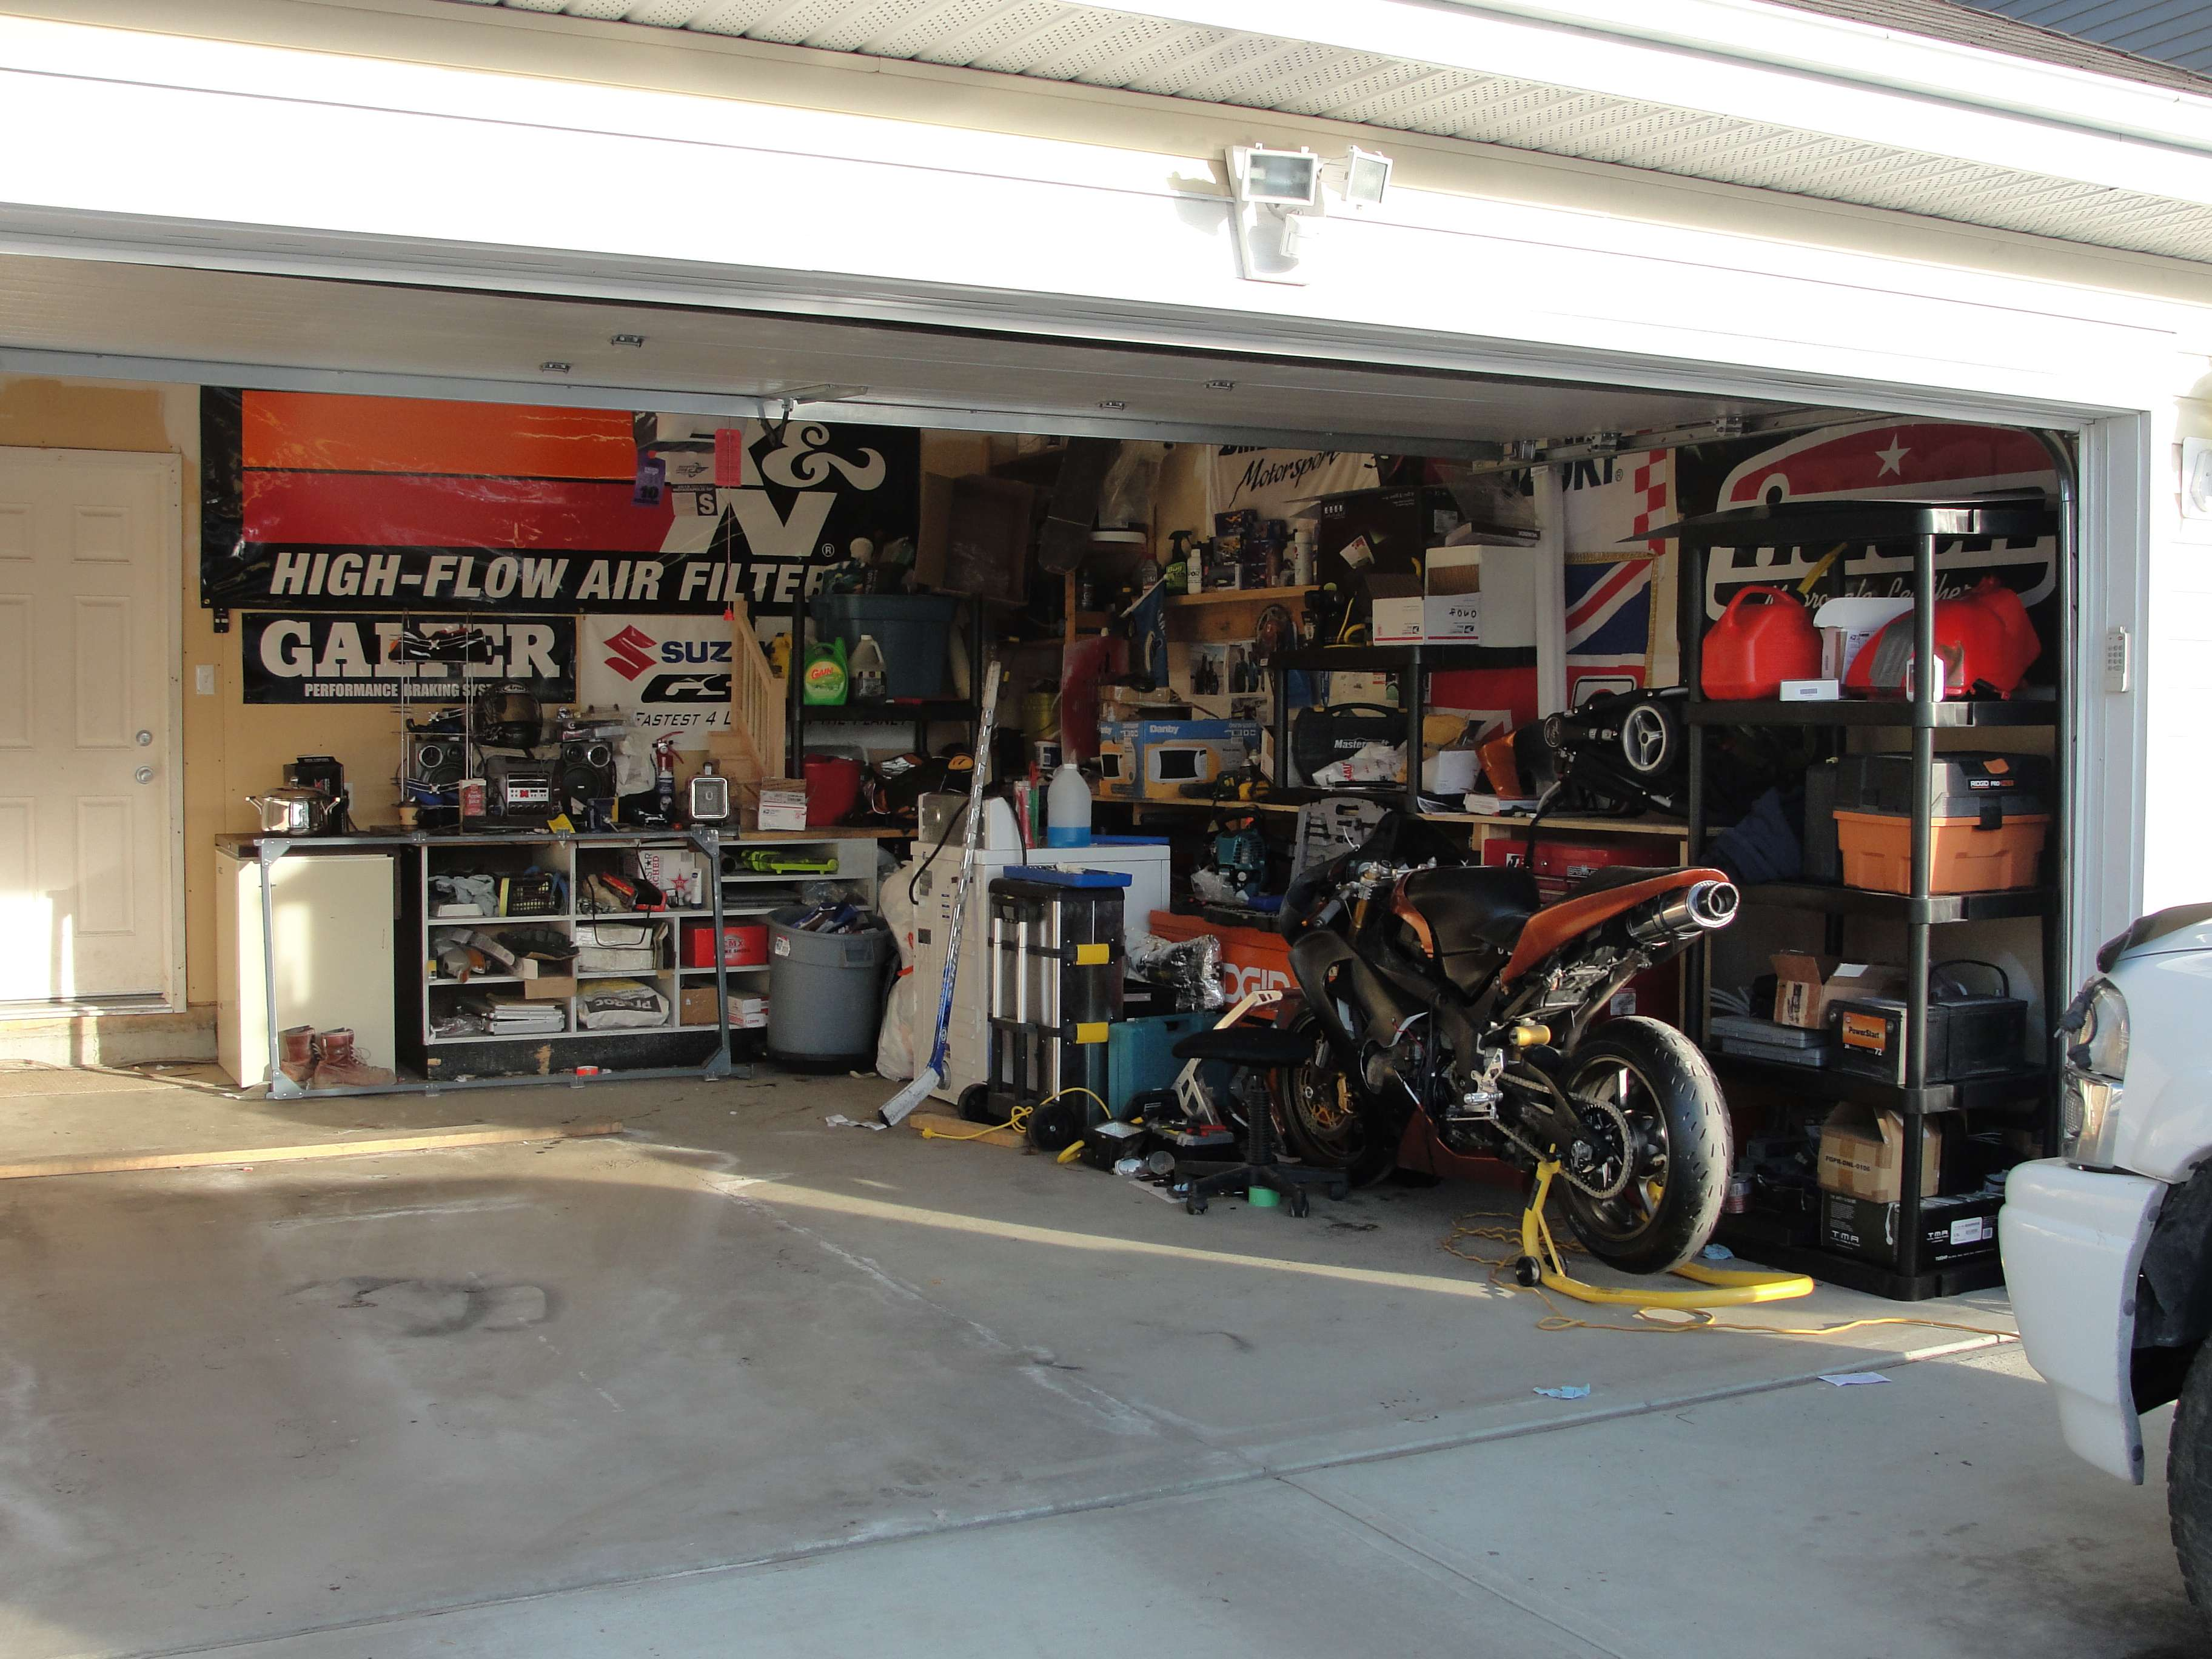 Garage Room post up your bike's garage/shop/room - page 6 - zx6r forum